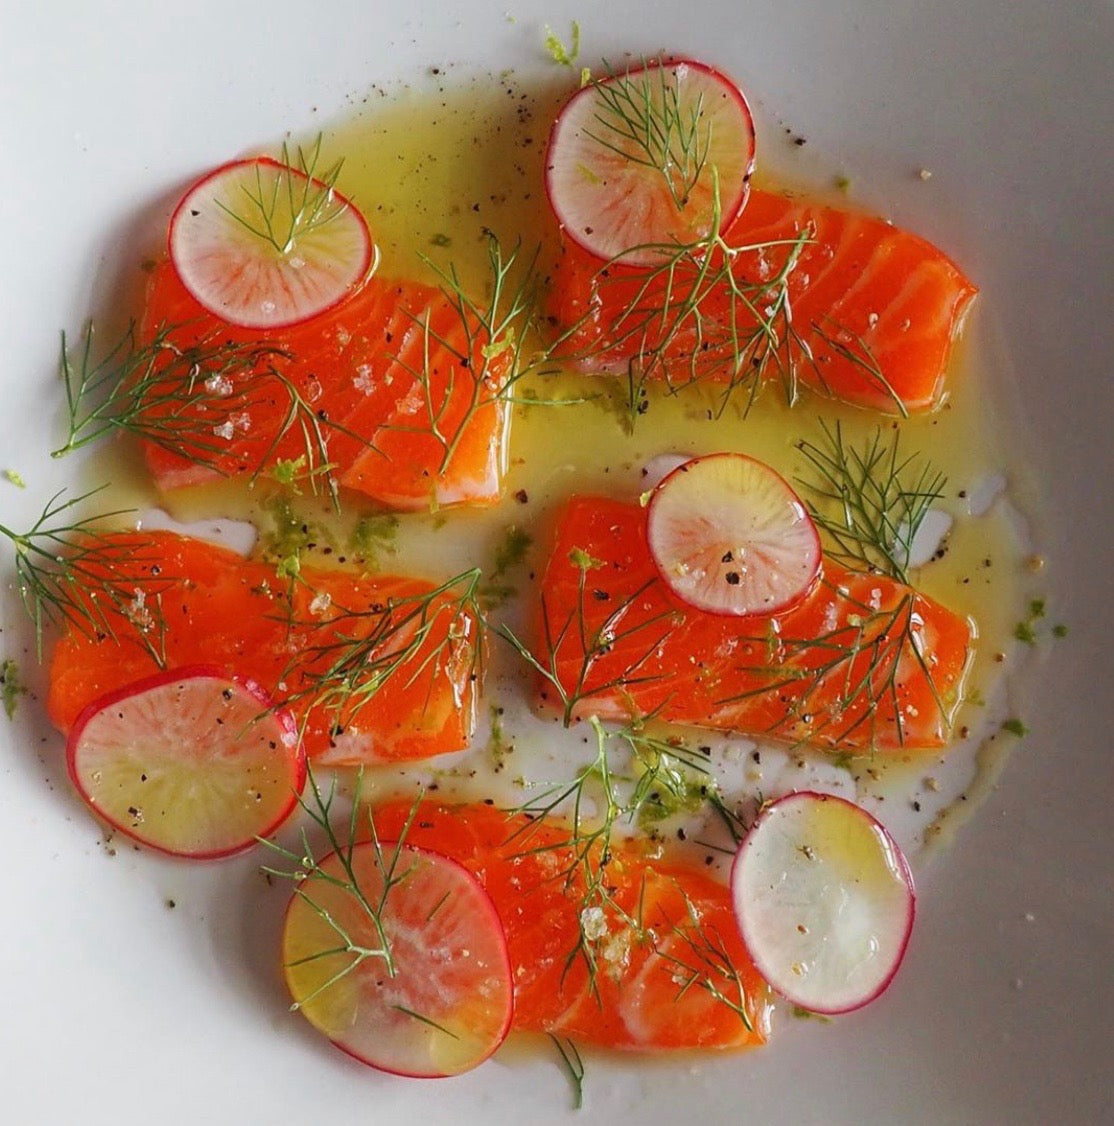 Fennel and Zest Cured Steelhead